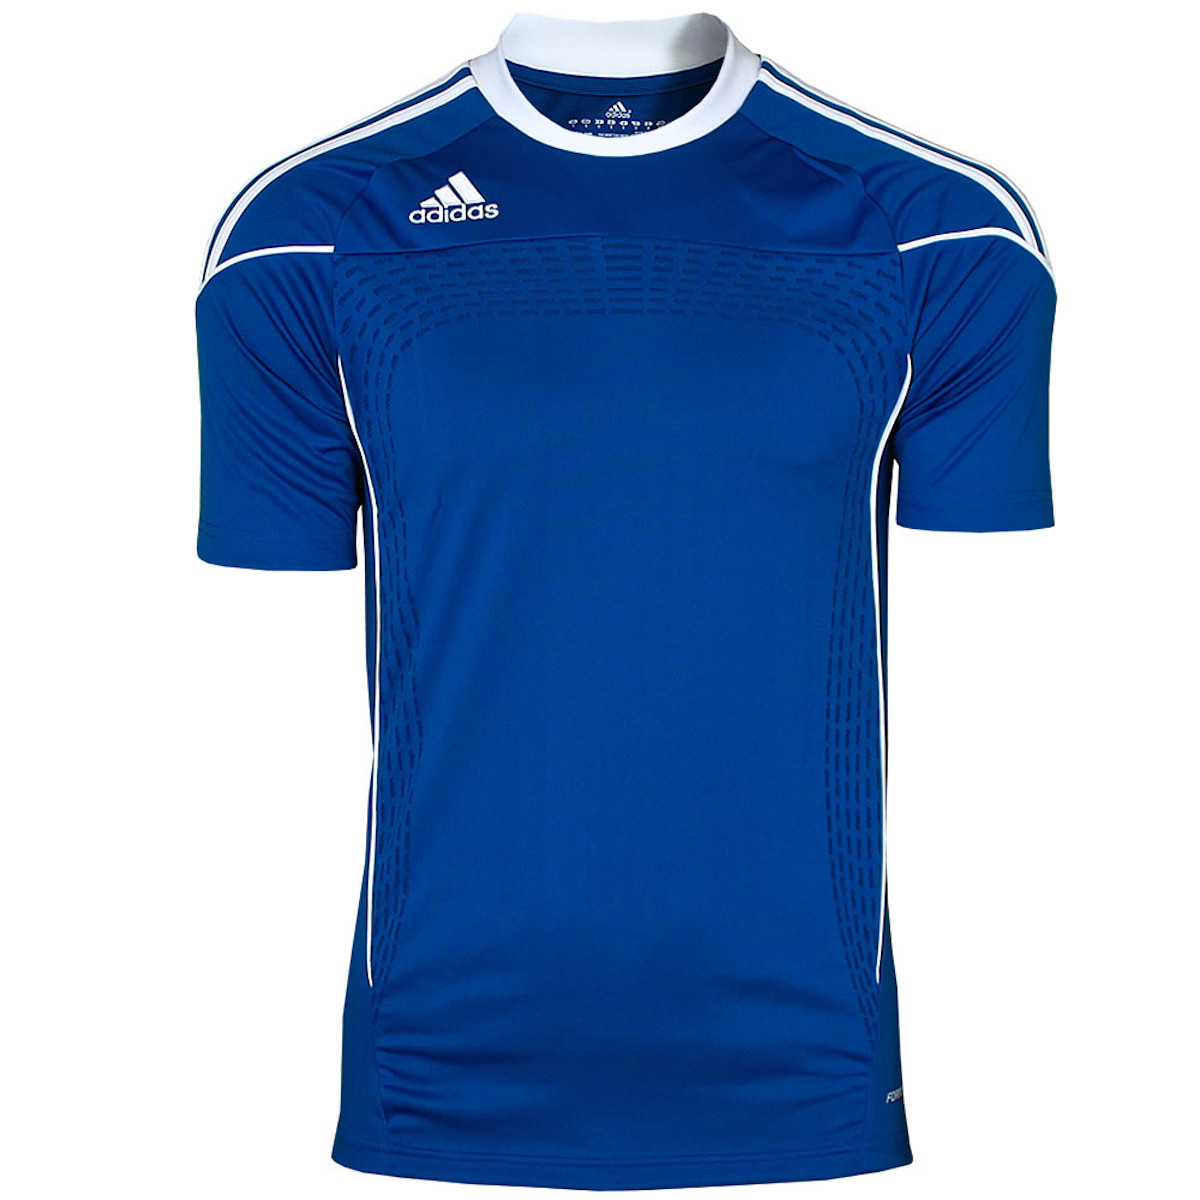 adidas trikot condivo climacool shirt s fu ball shirt blau wei formotion ebay. Black Bedroom Furniture Sets. Home Design Ideas